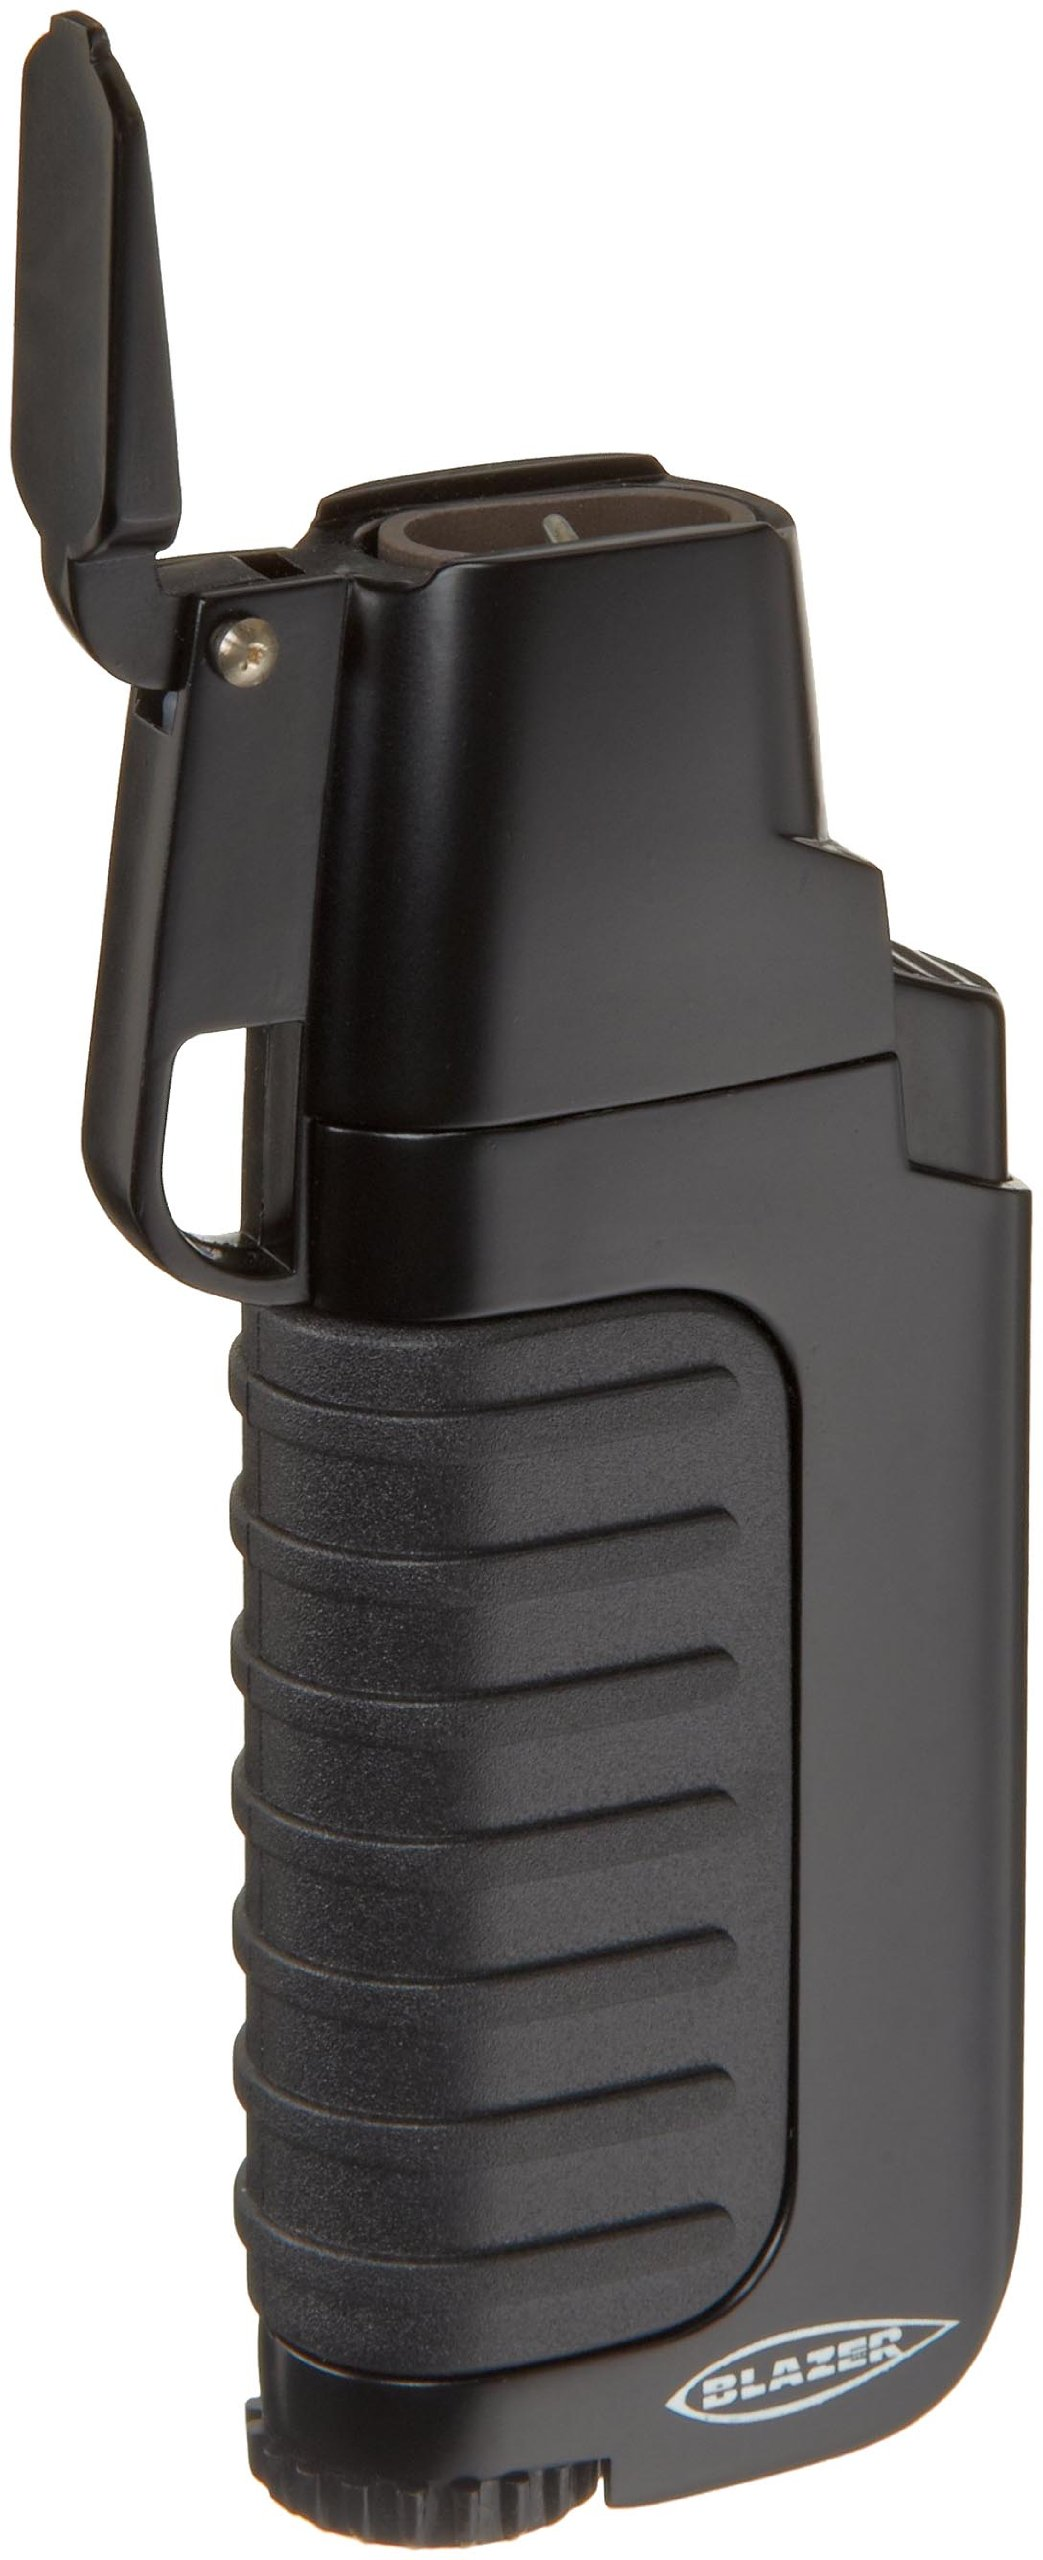 Blazer Venture Butane Refillable  Torch Lighter, Black